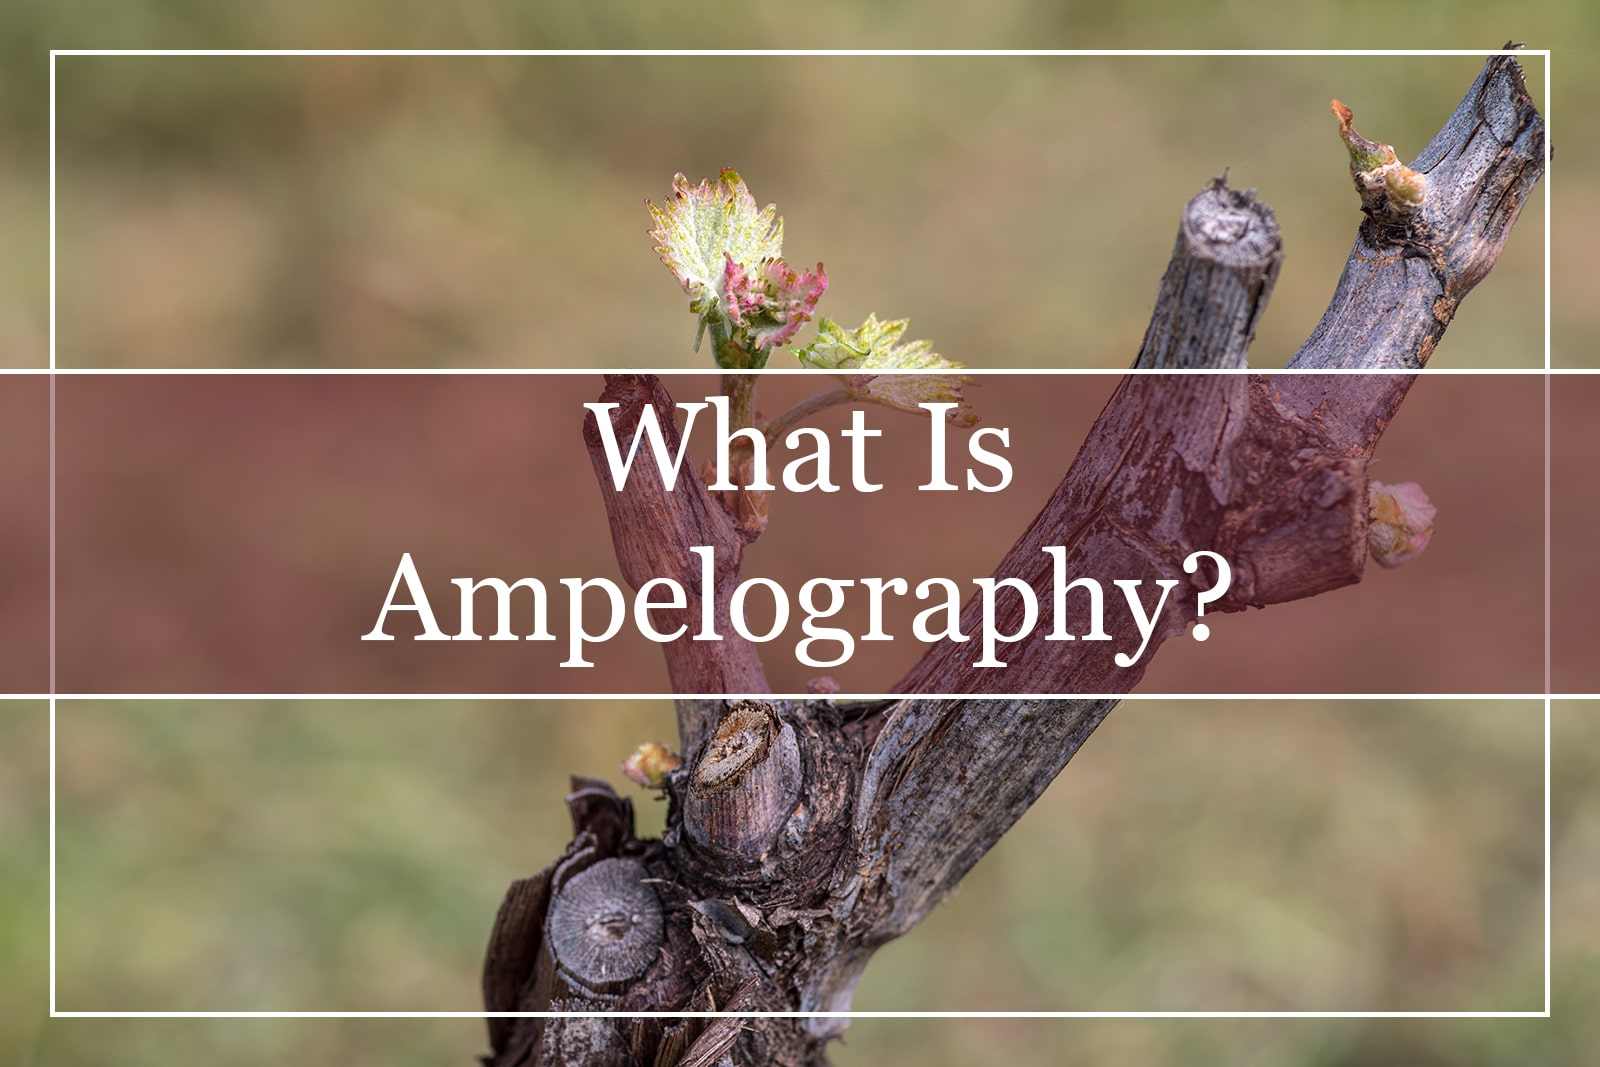 What Is Ampelography